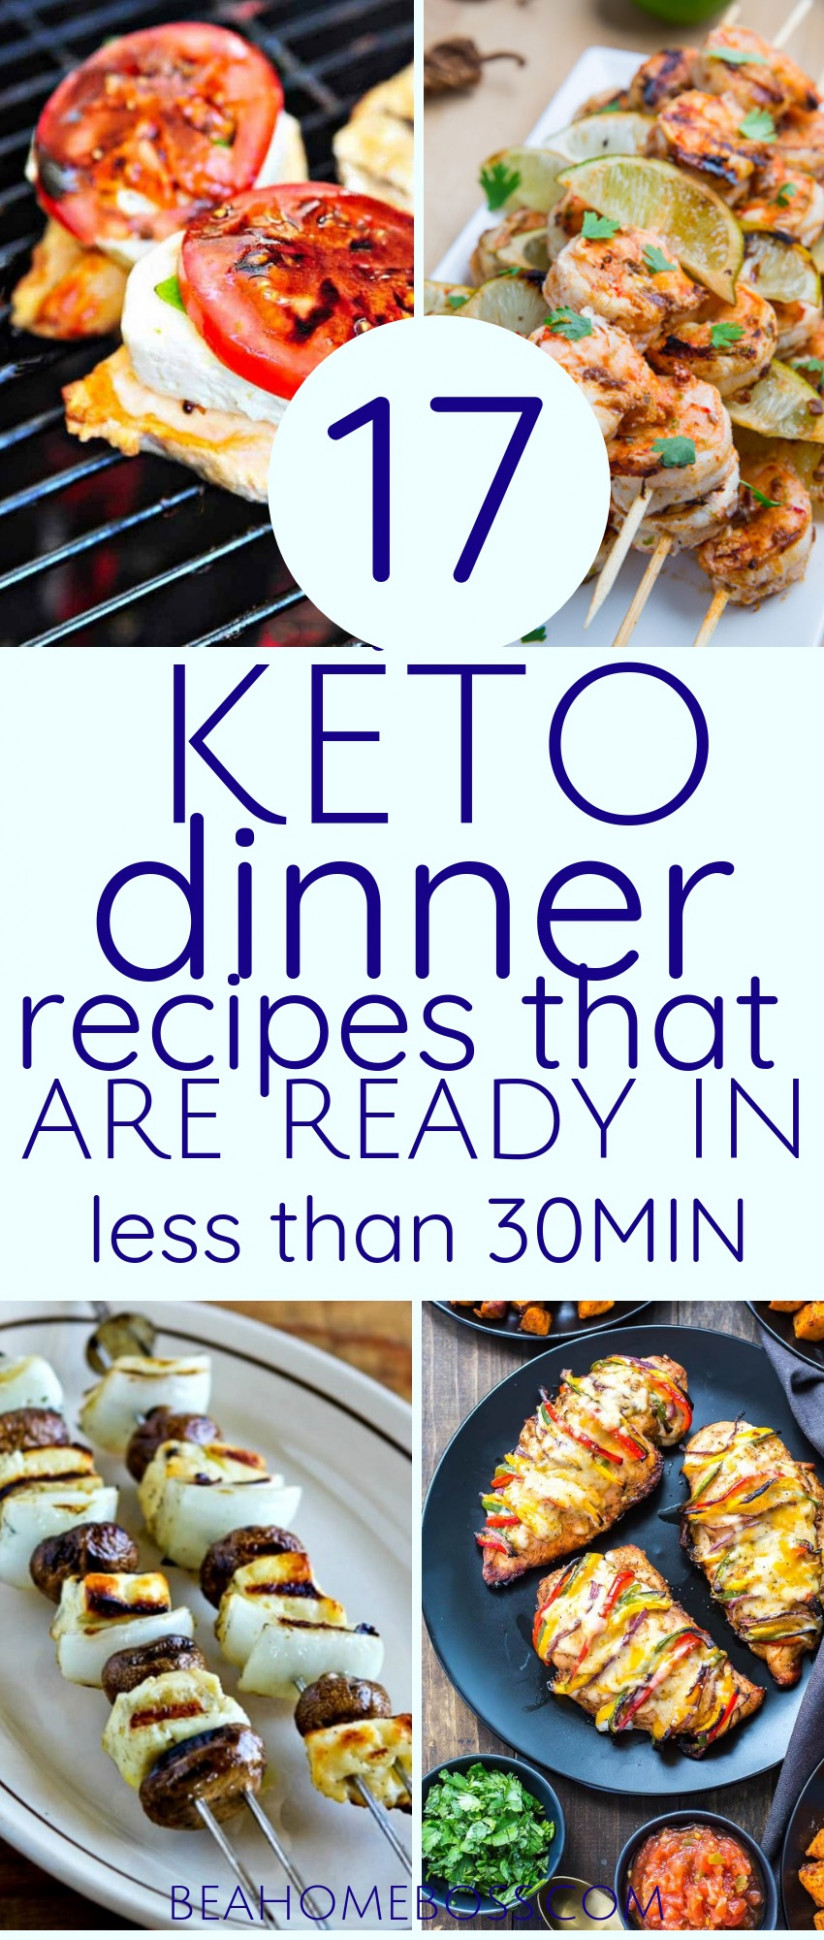 15+ Keto Dinner Ideas Made in 15 Minutes or Less (Updated ..